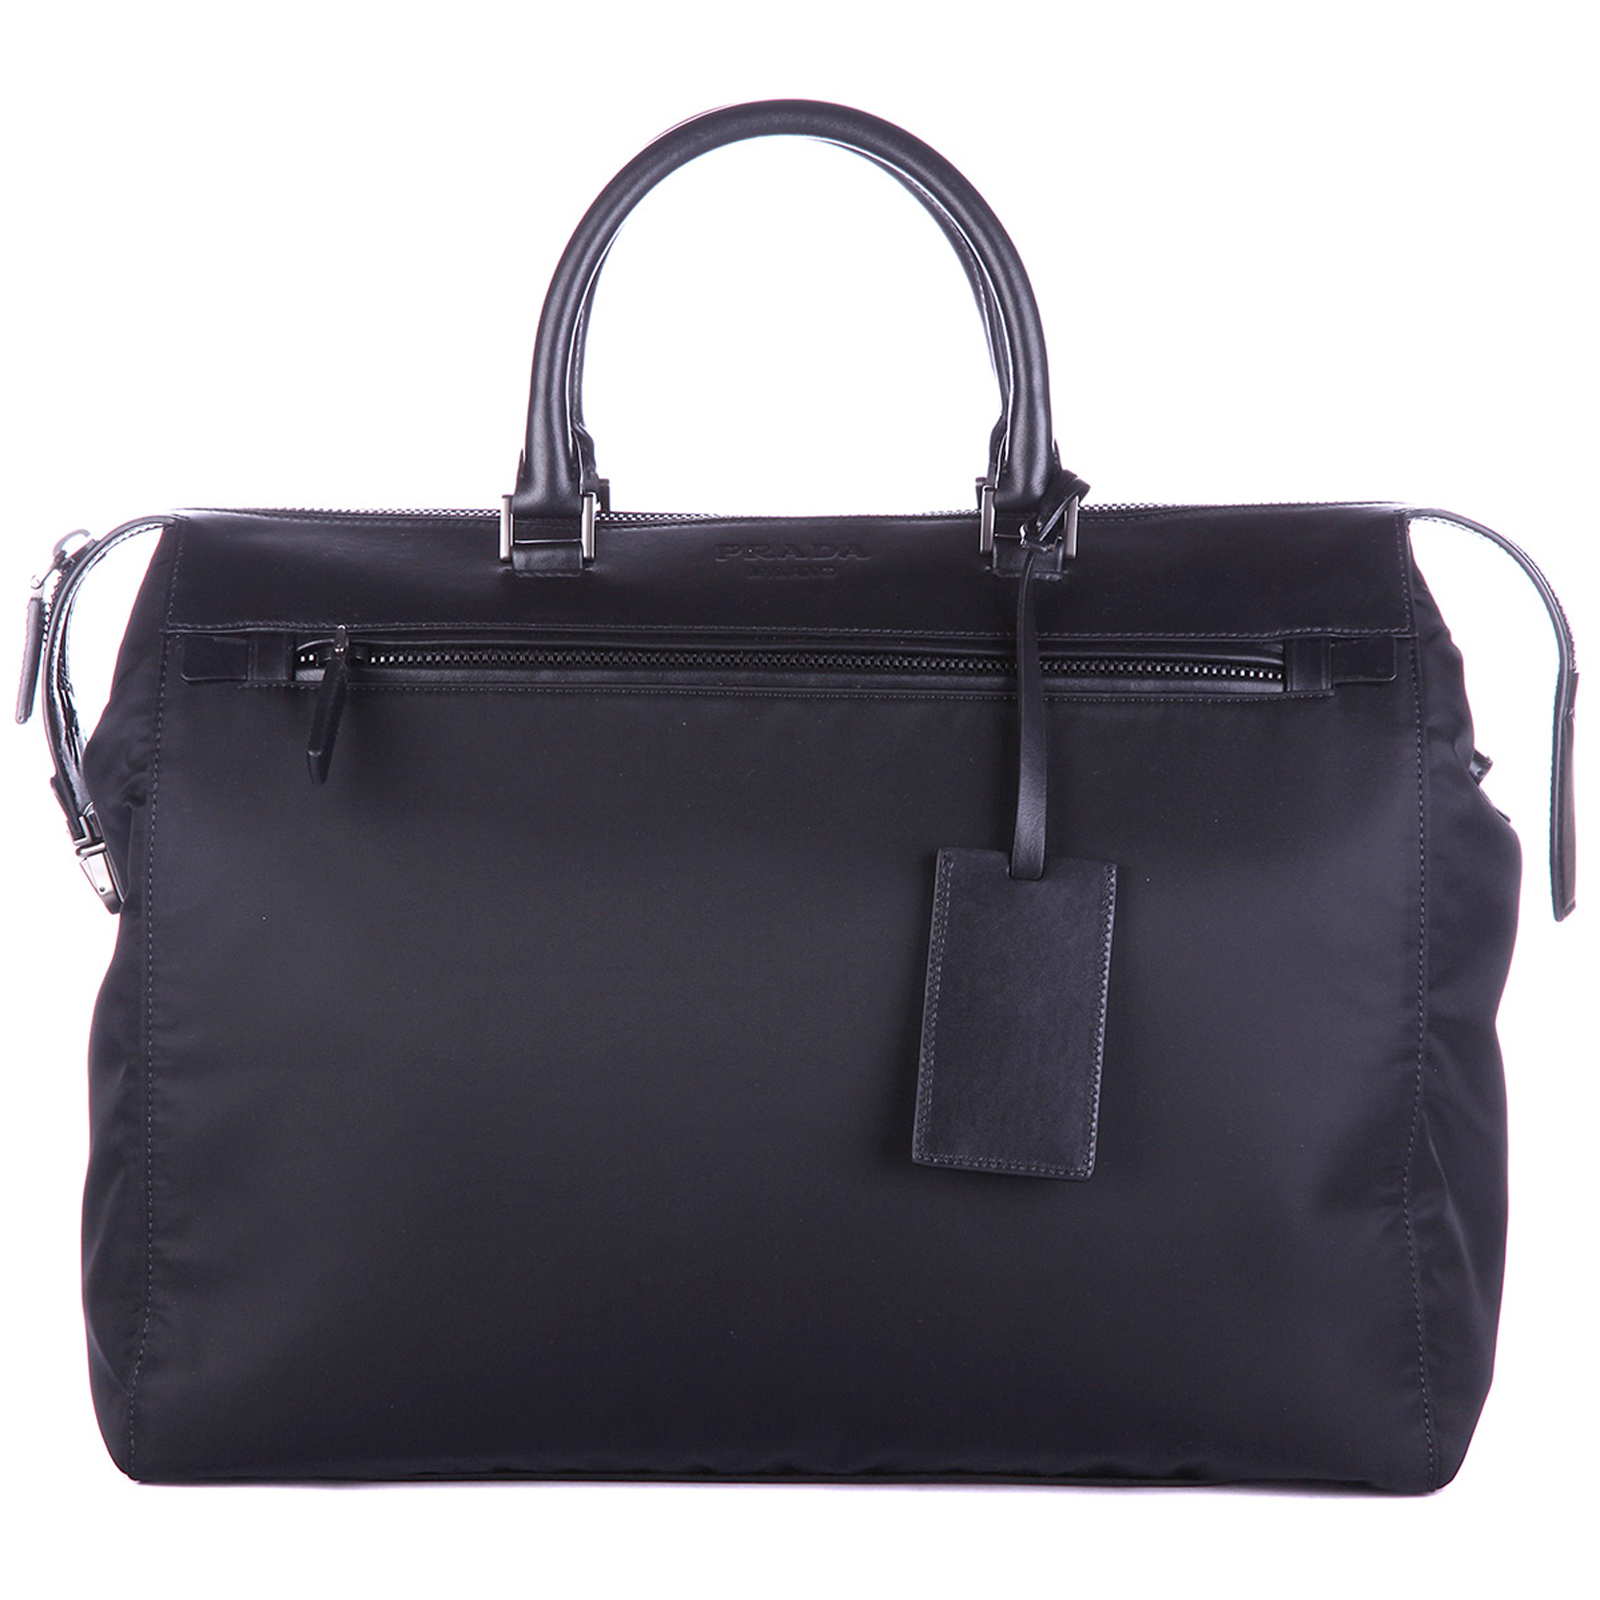 Sac porte-documents homme soft